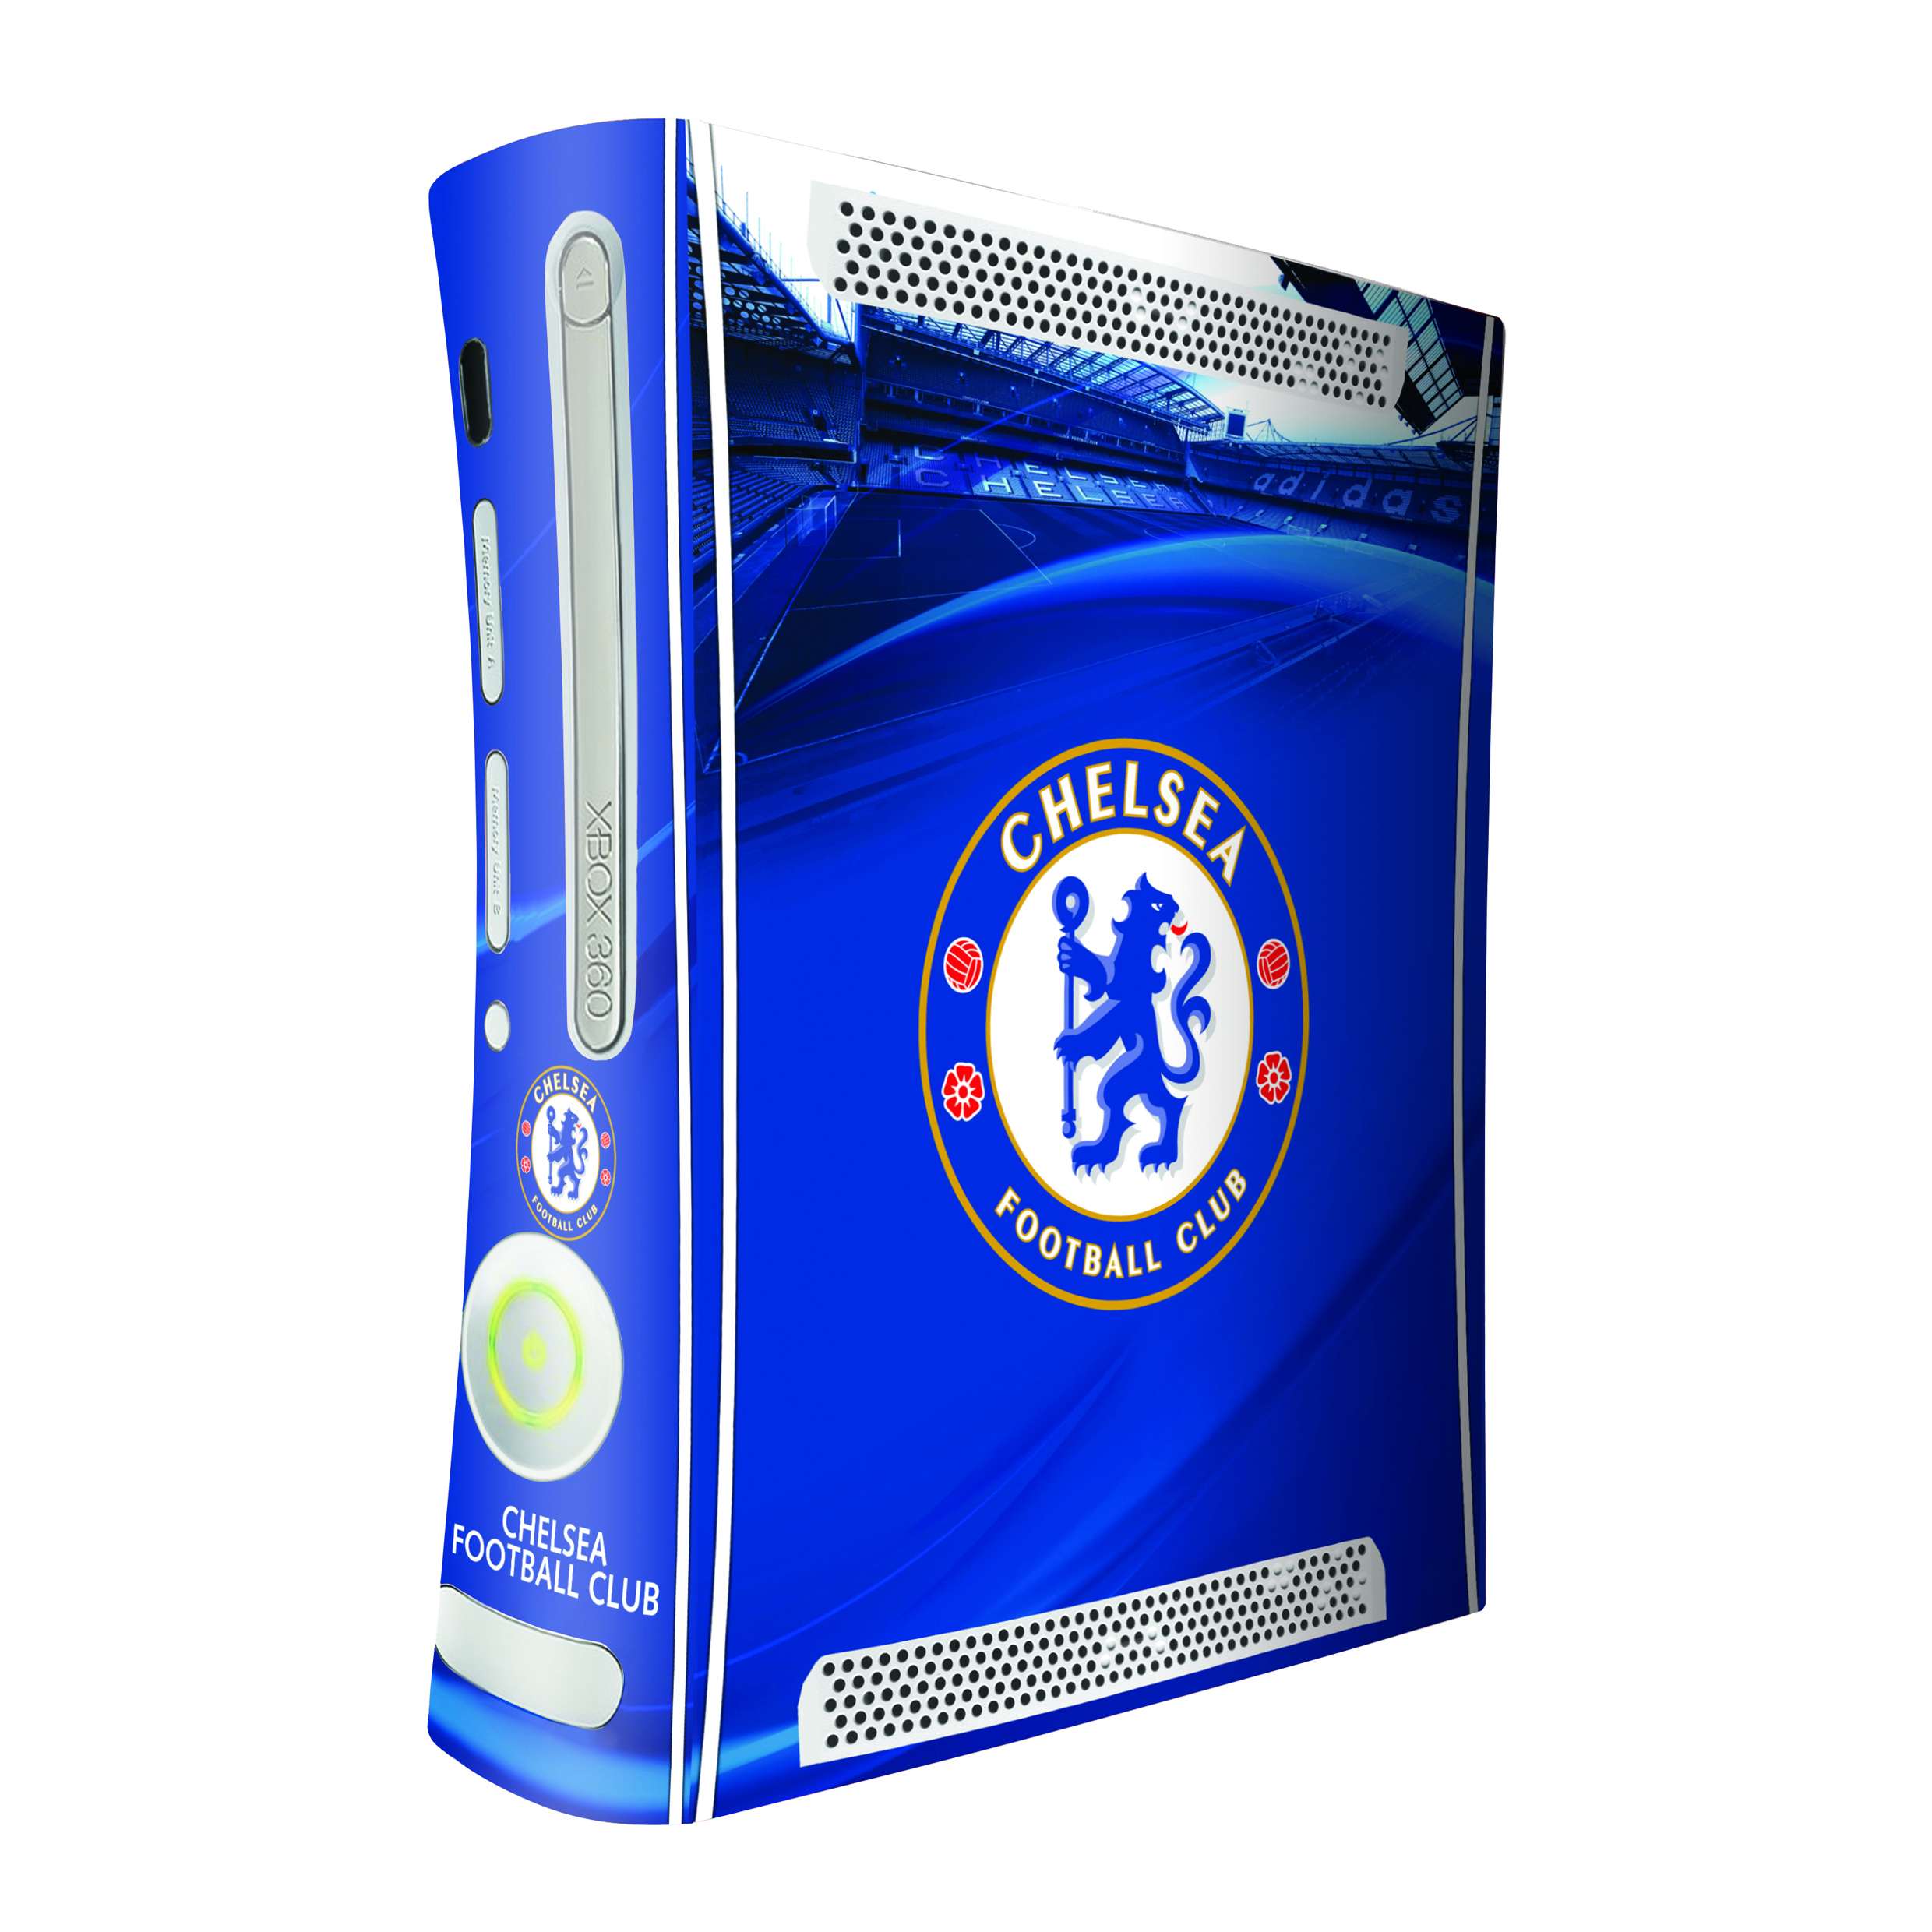 Chelsea FC Xbox 360 Games Console Skin